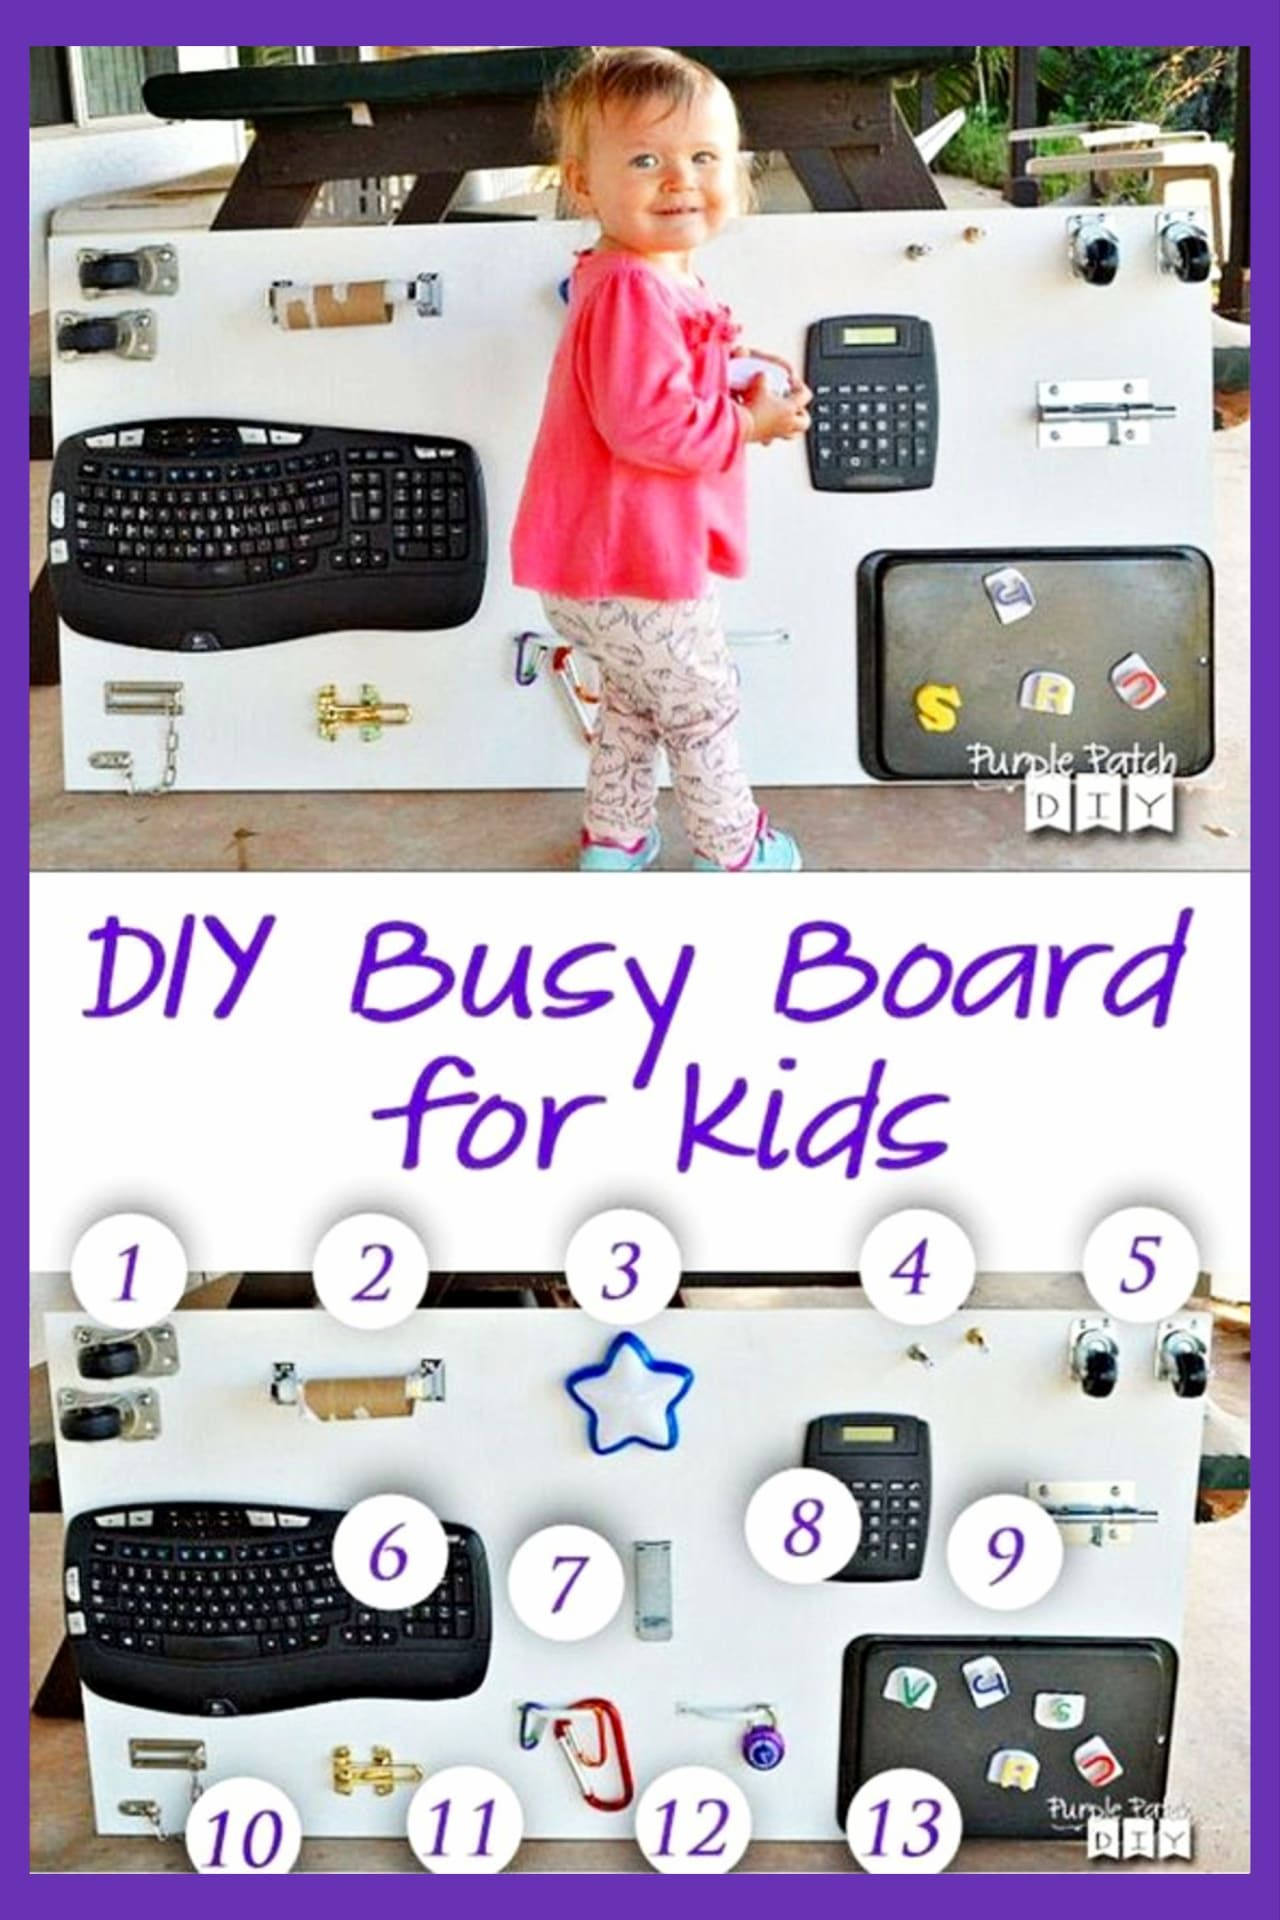 57+ Sensory Board Ideas for Toddlers - Easy DIY Activity Boards Your Toddler Will LOVE